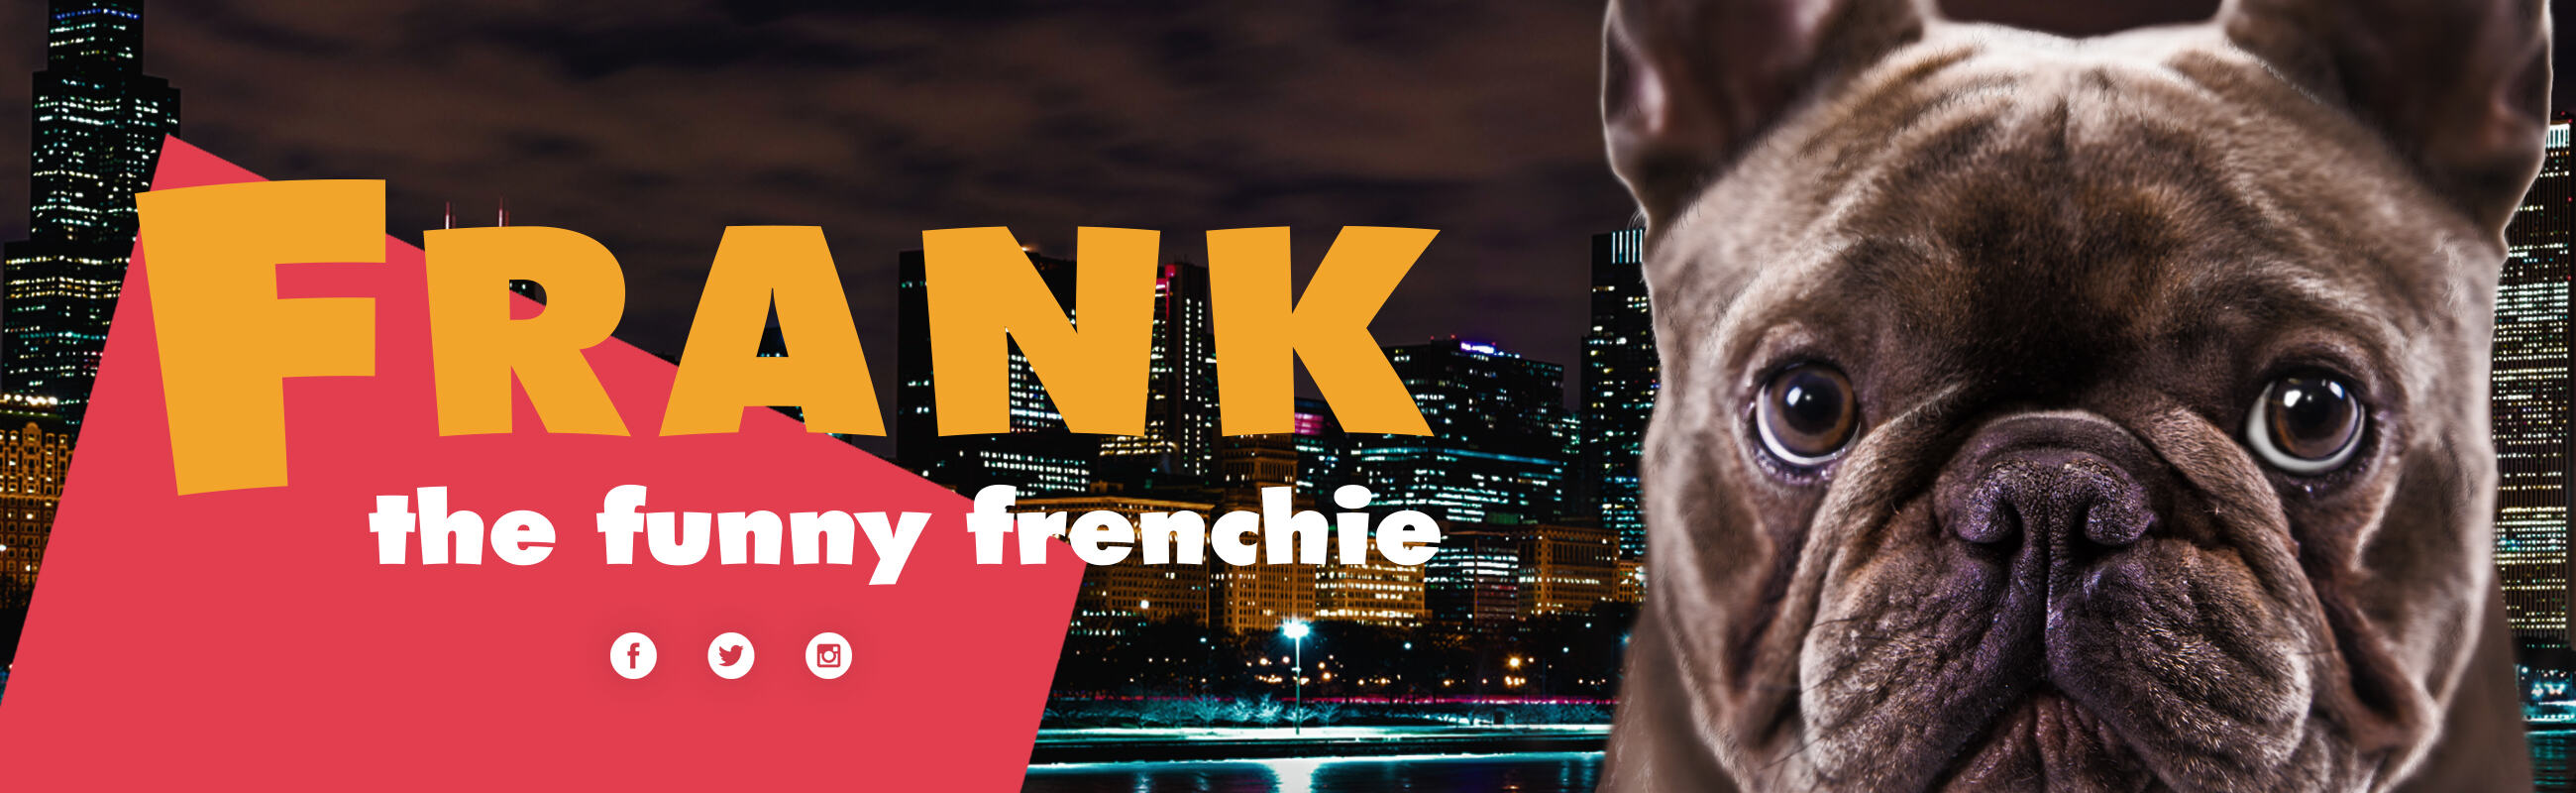 Frank The Funny Frenchie